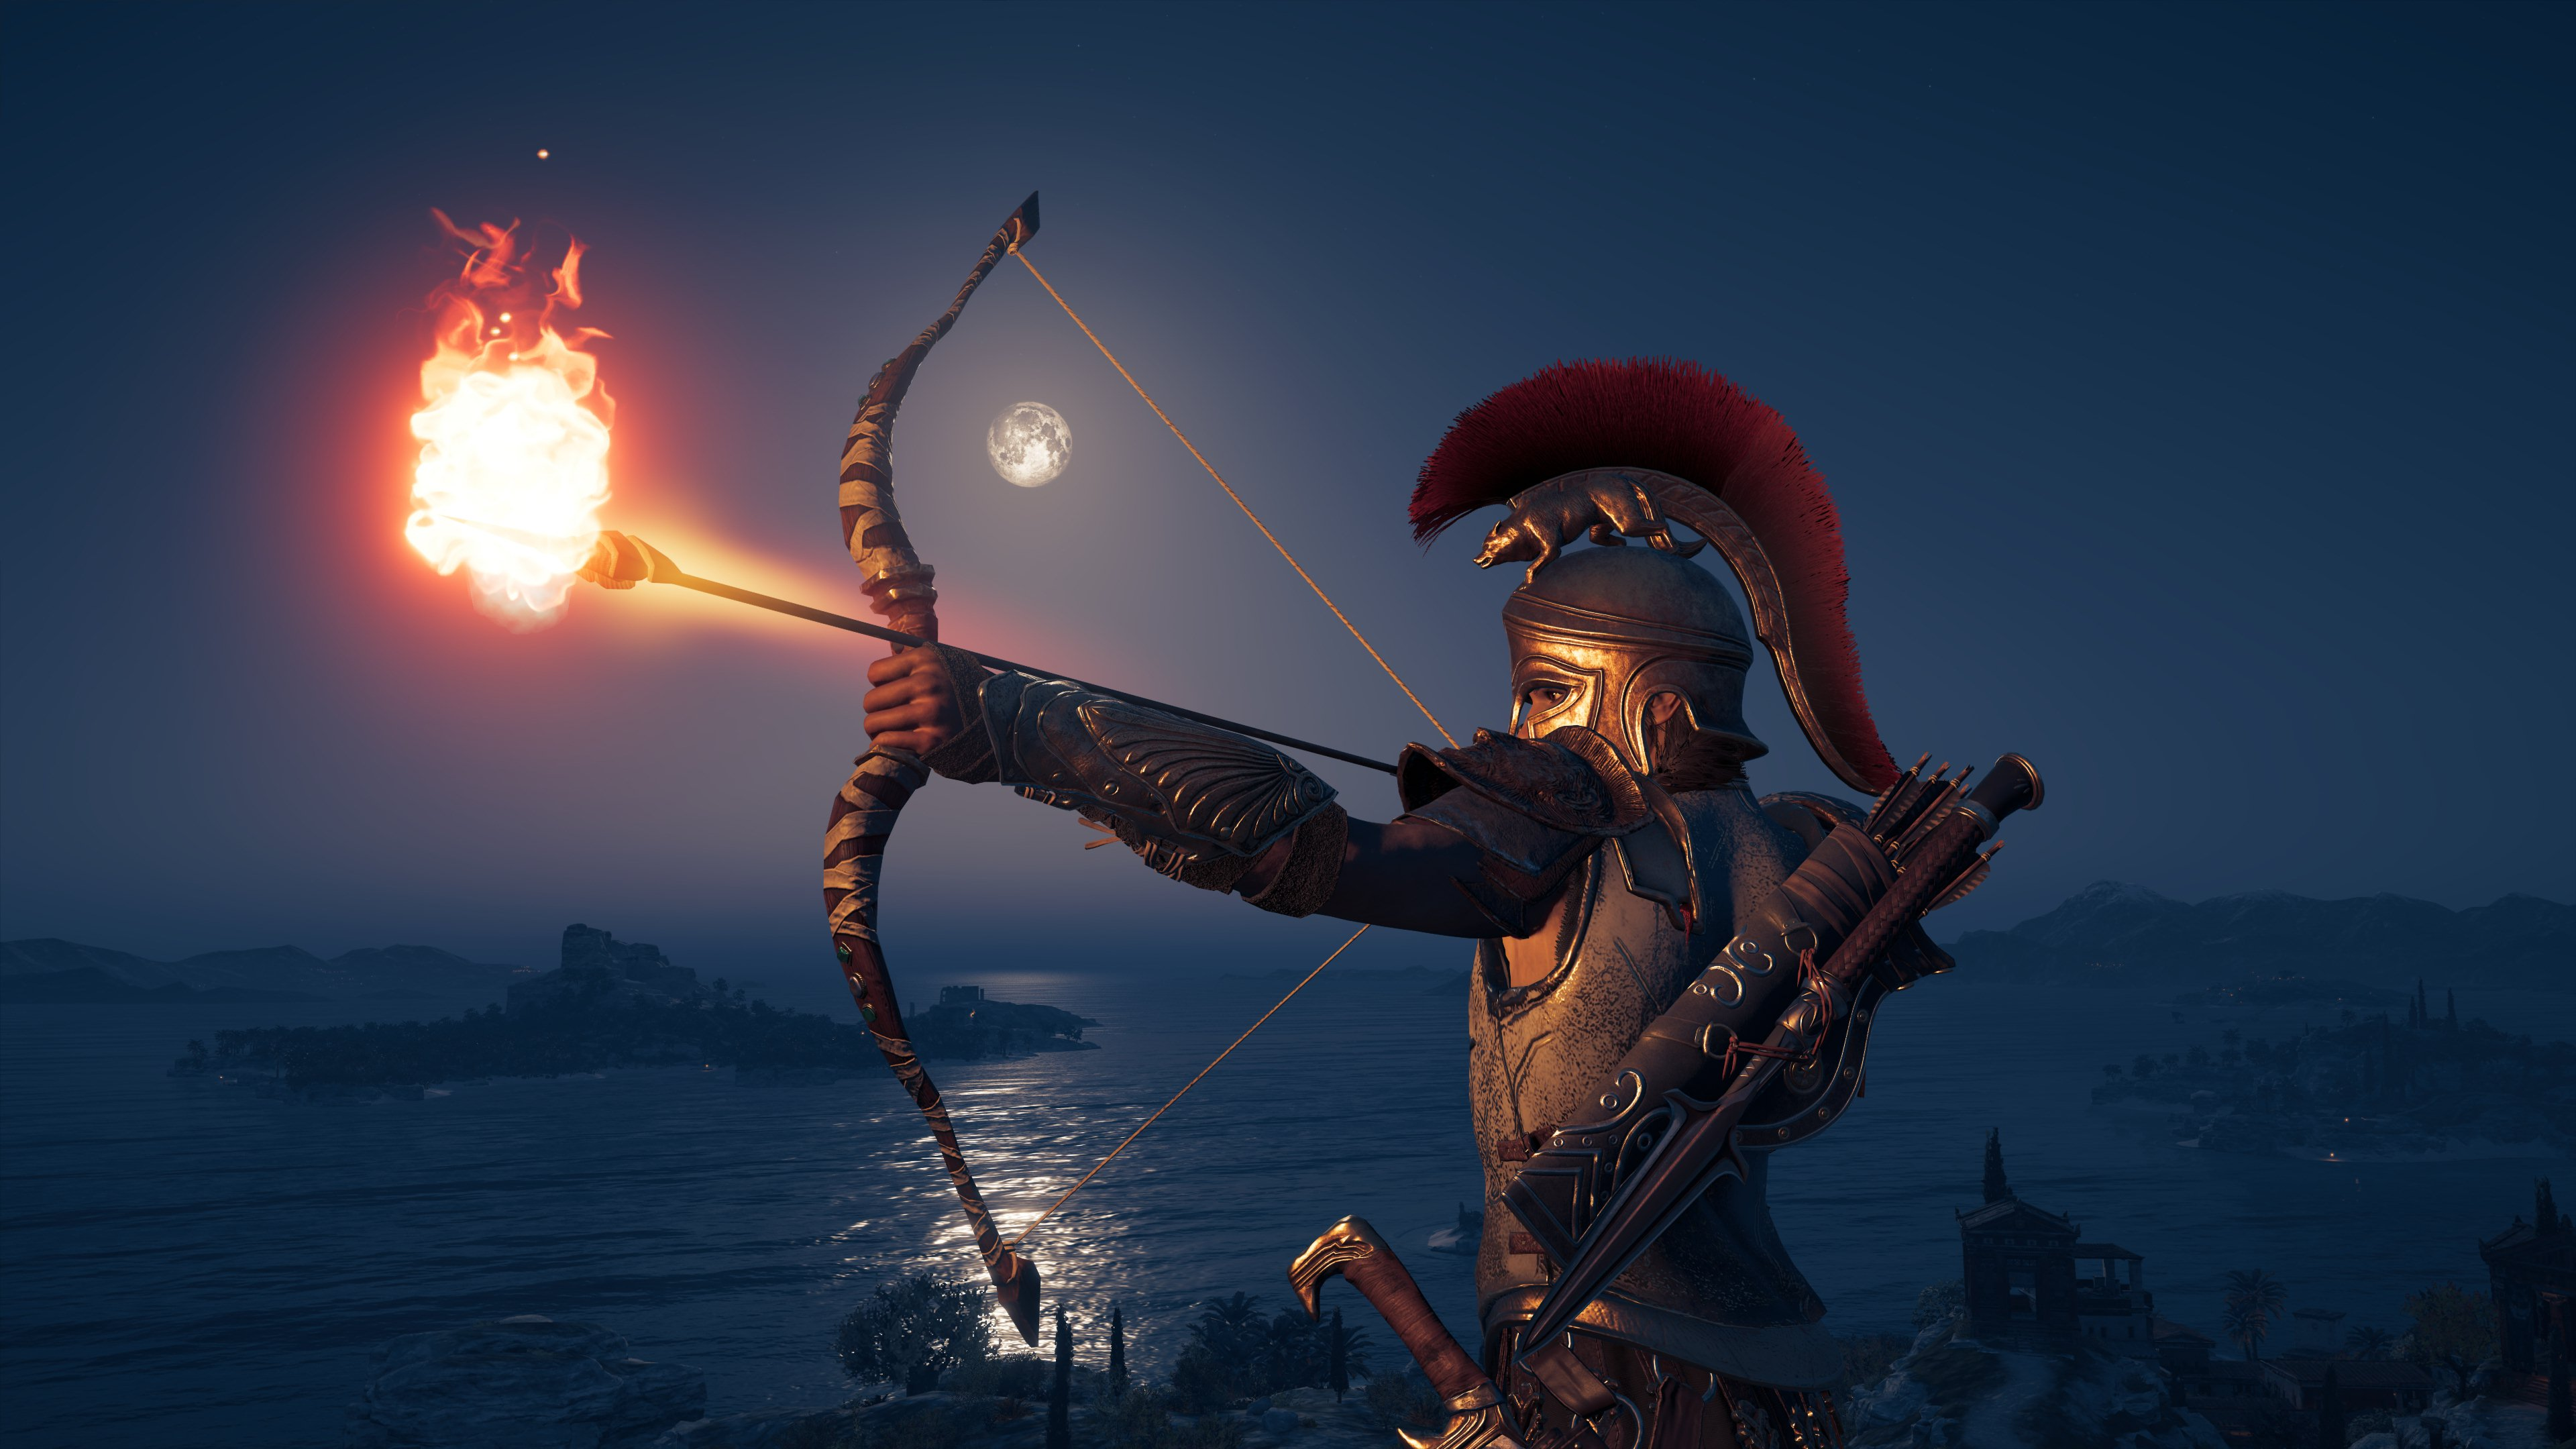 3840x2400 4k Assassins Creed Odyssey Bow And Arrow 4k HD ...